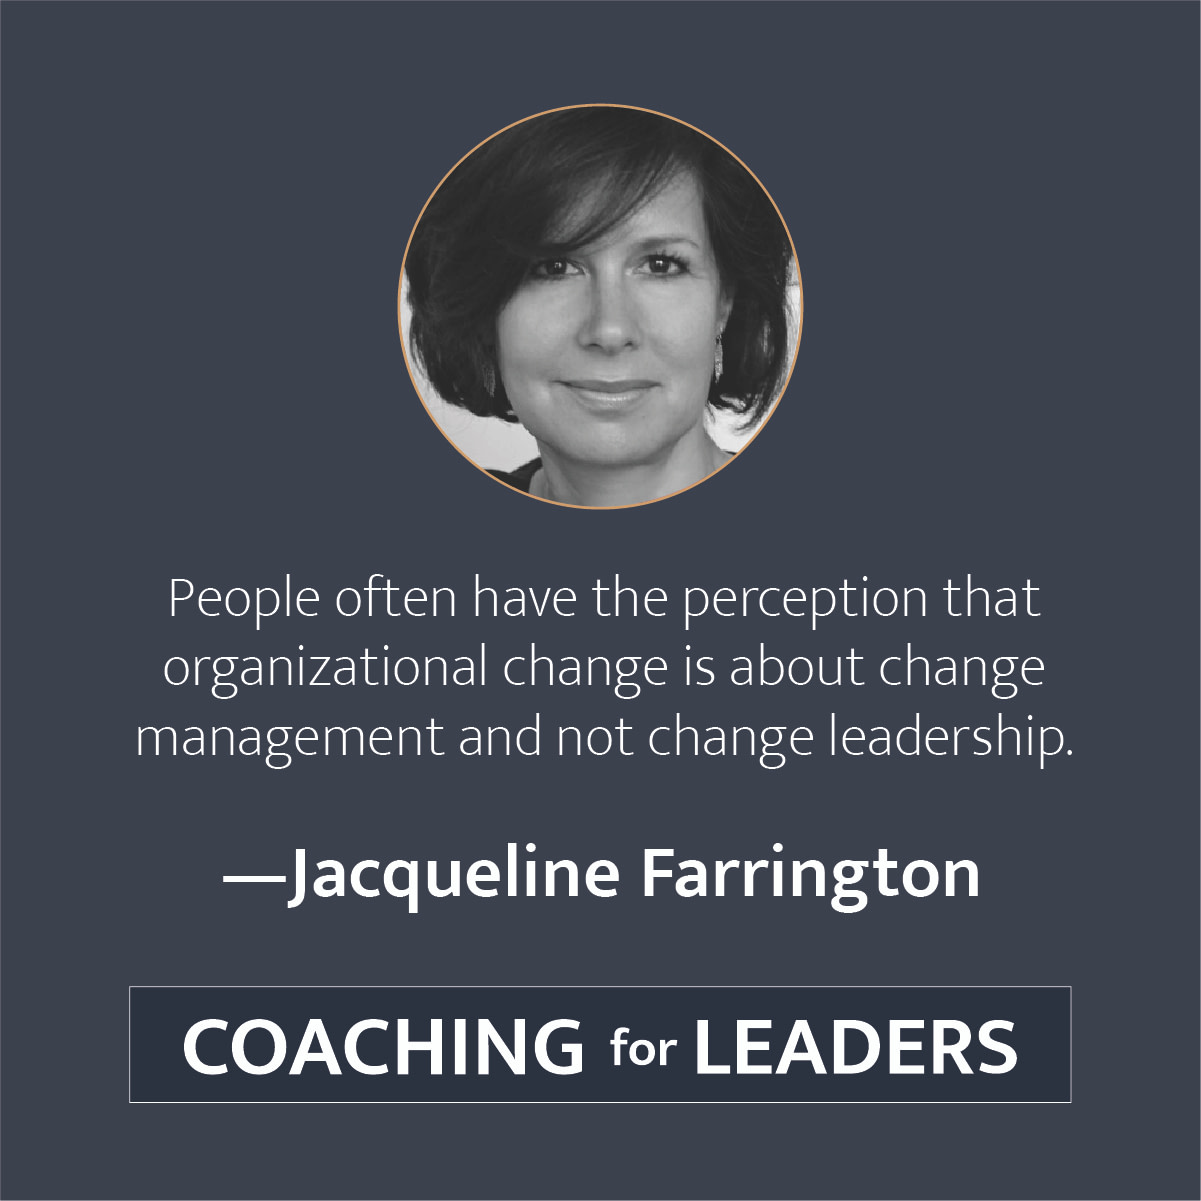 People often have the perception that organizational change is about change management and not change leadership.